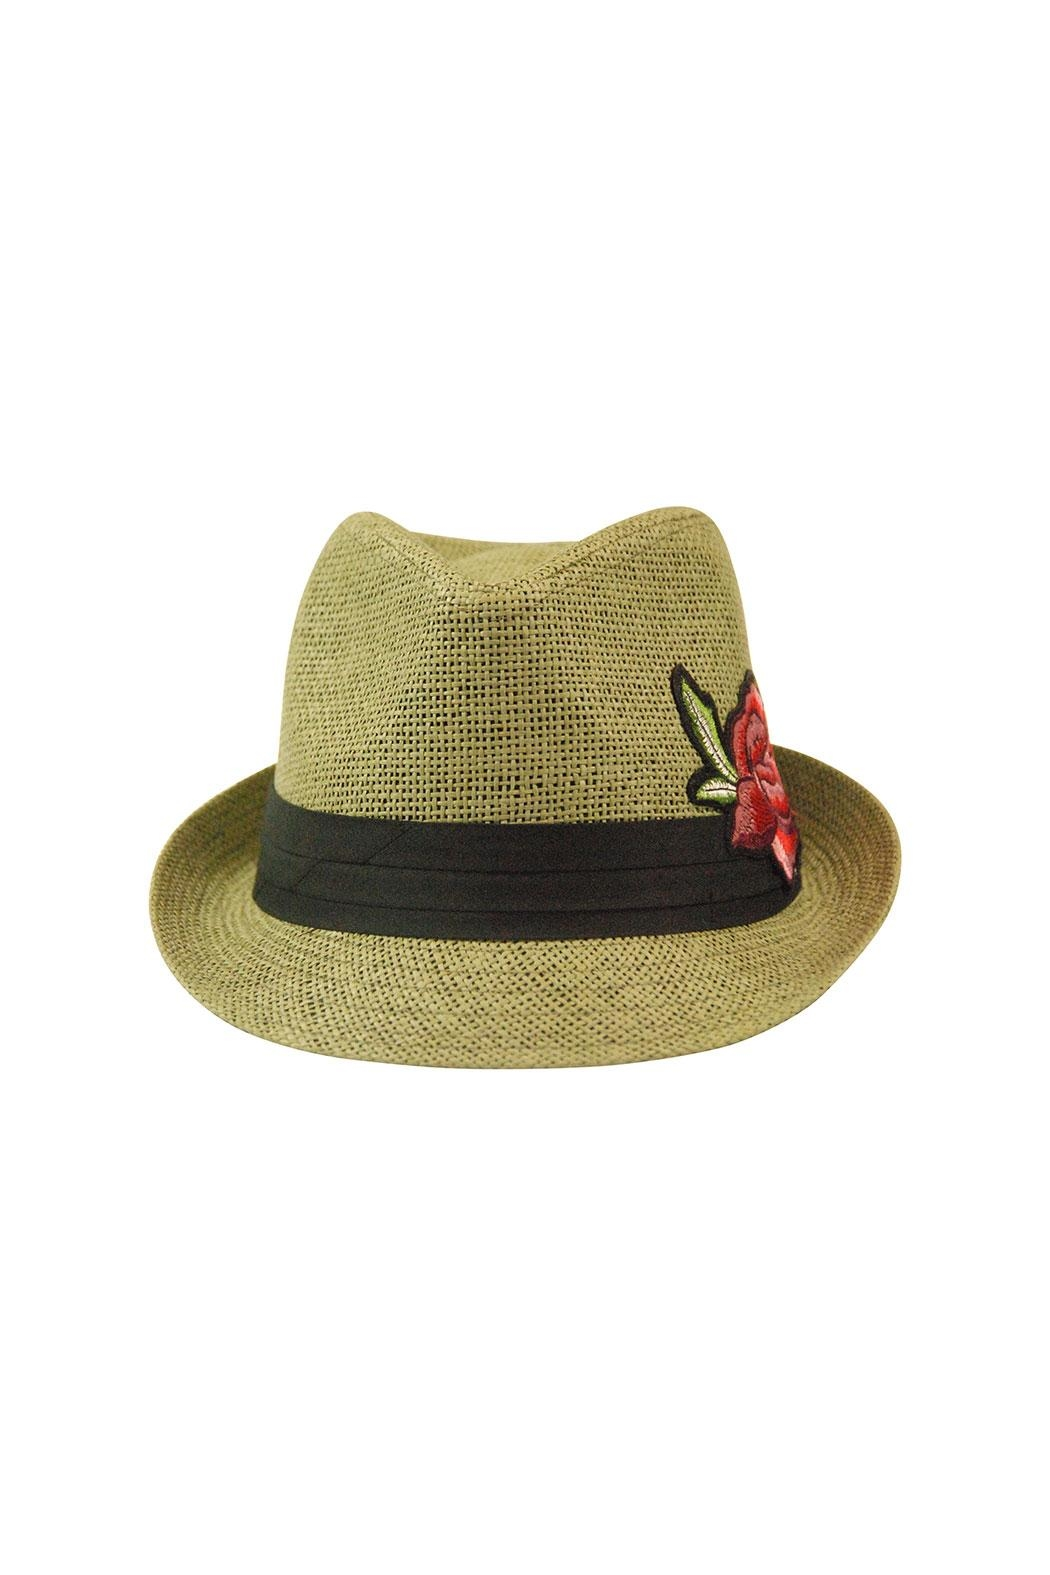 The Hatter Company Floral Patch Fedora Hat - Front Full Image